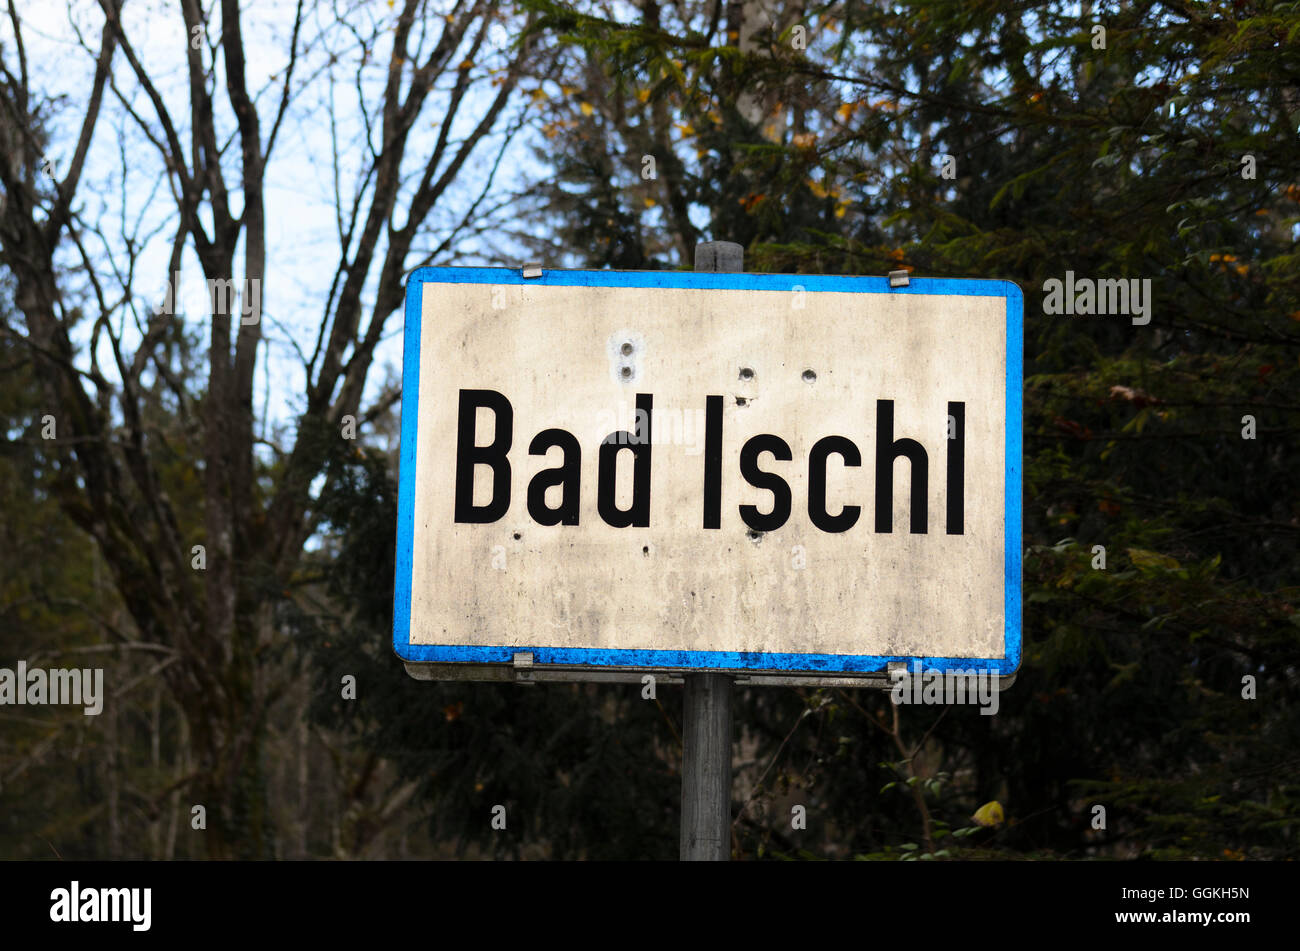 Bad Ischl: entrance to the town sign perforated by bullet holes, hunter, hunting, Austria, Oberösterreich, - Stock Image